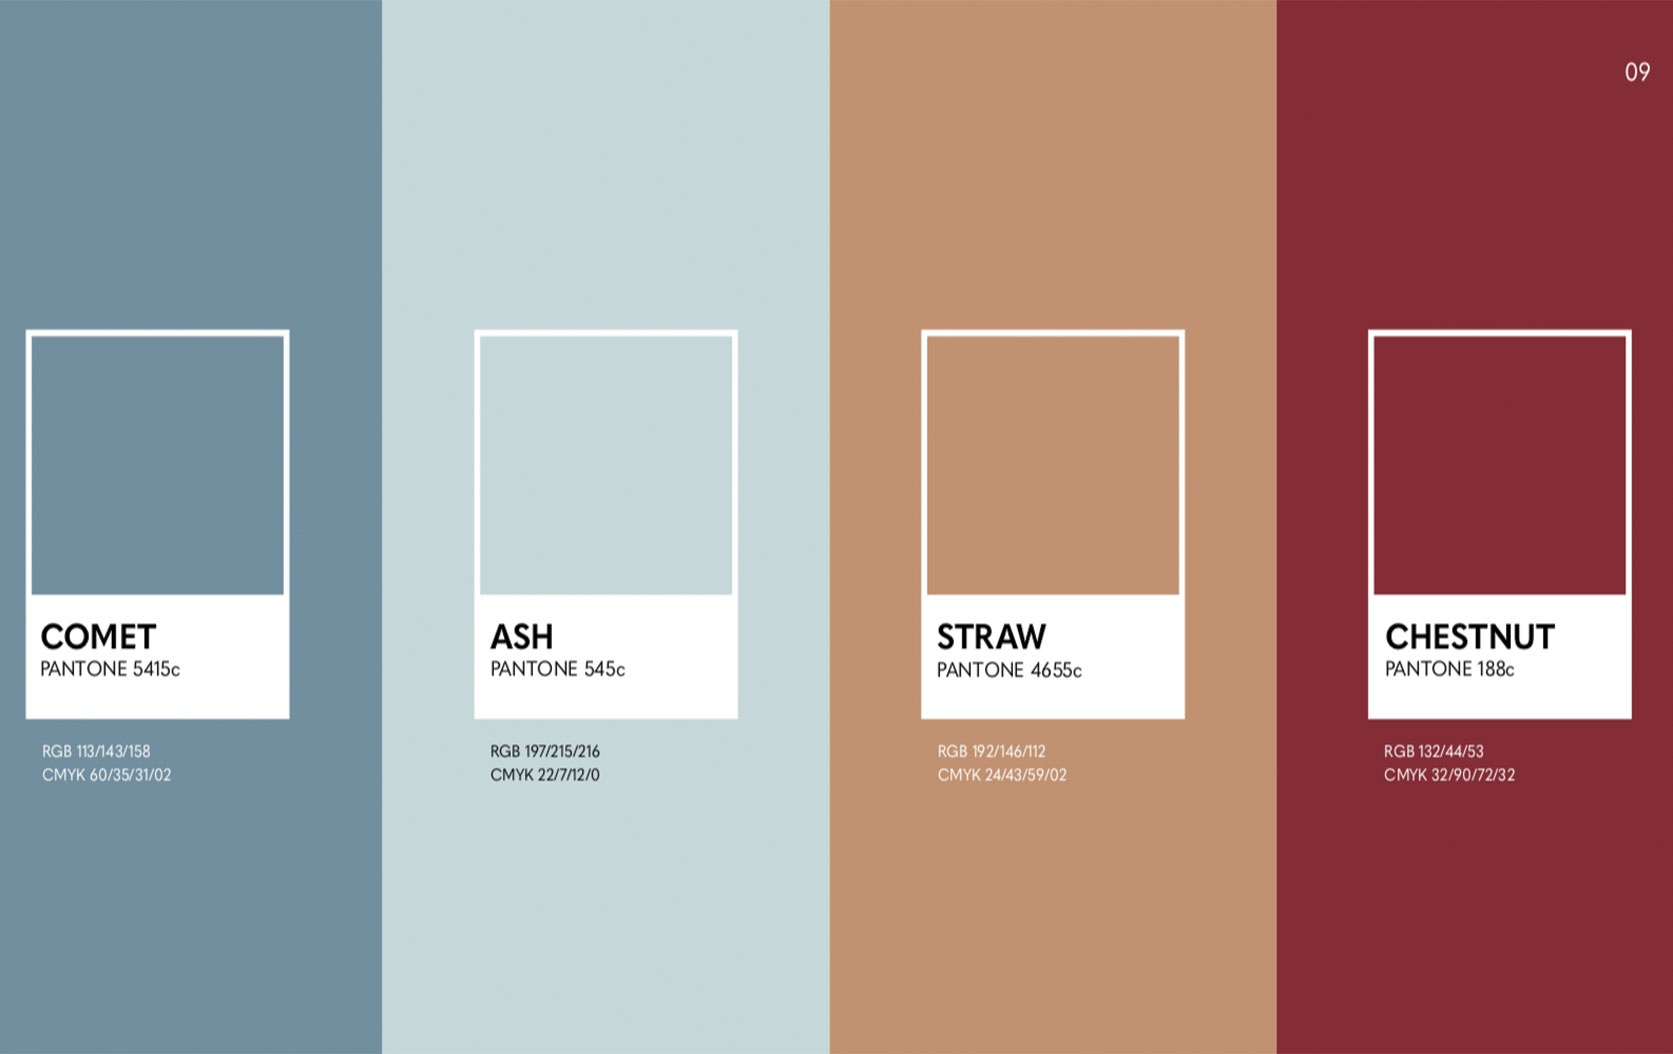 aspen-grove-brand guidelines-uncomn-projects